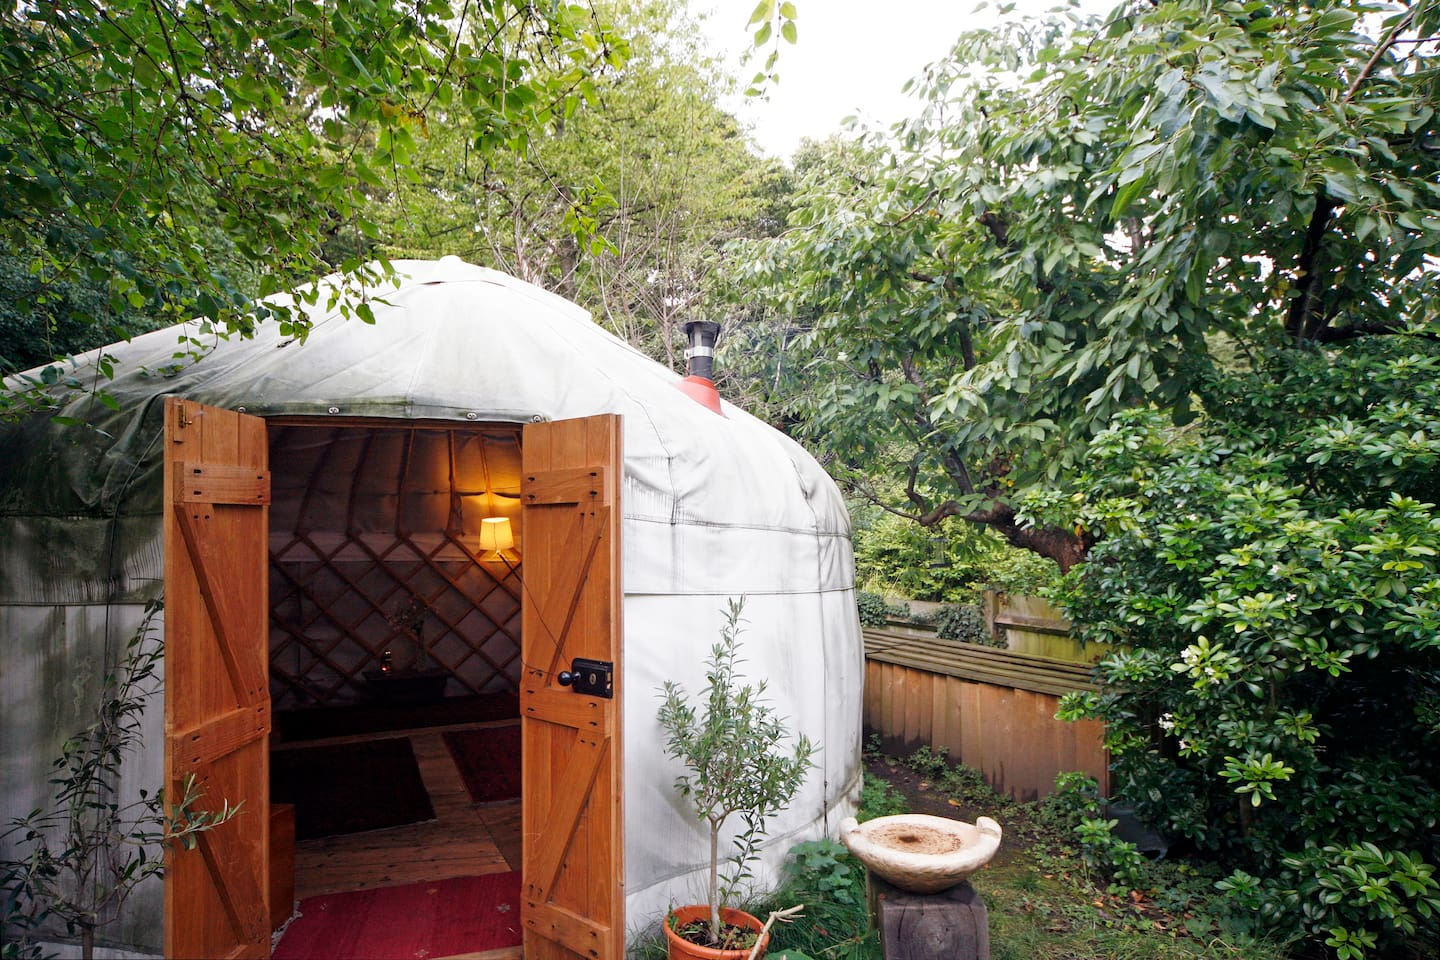 All yurts, even those made with yak covers, have solid wood doors.